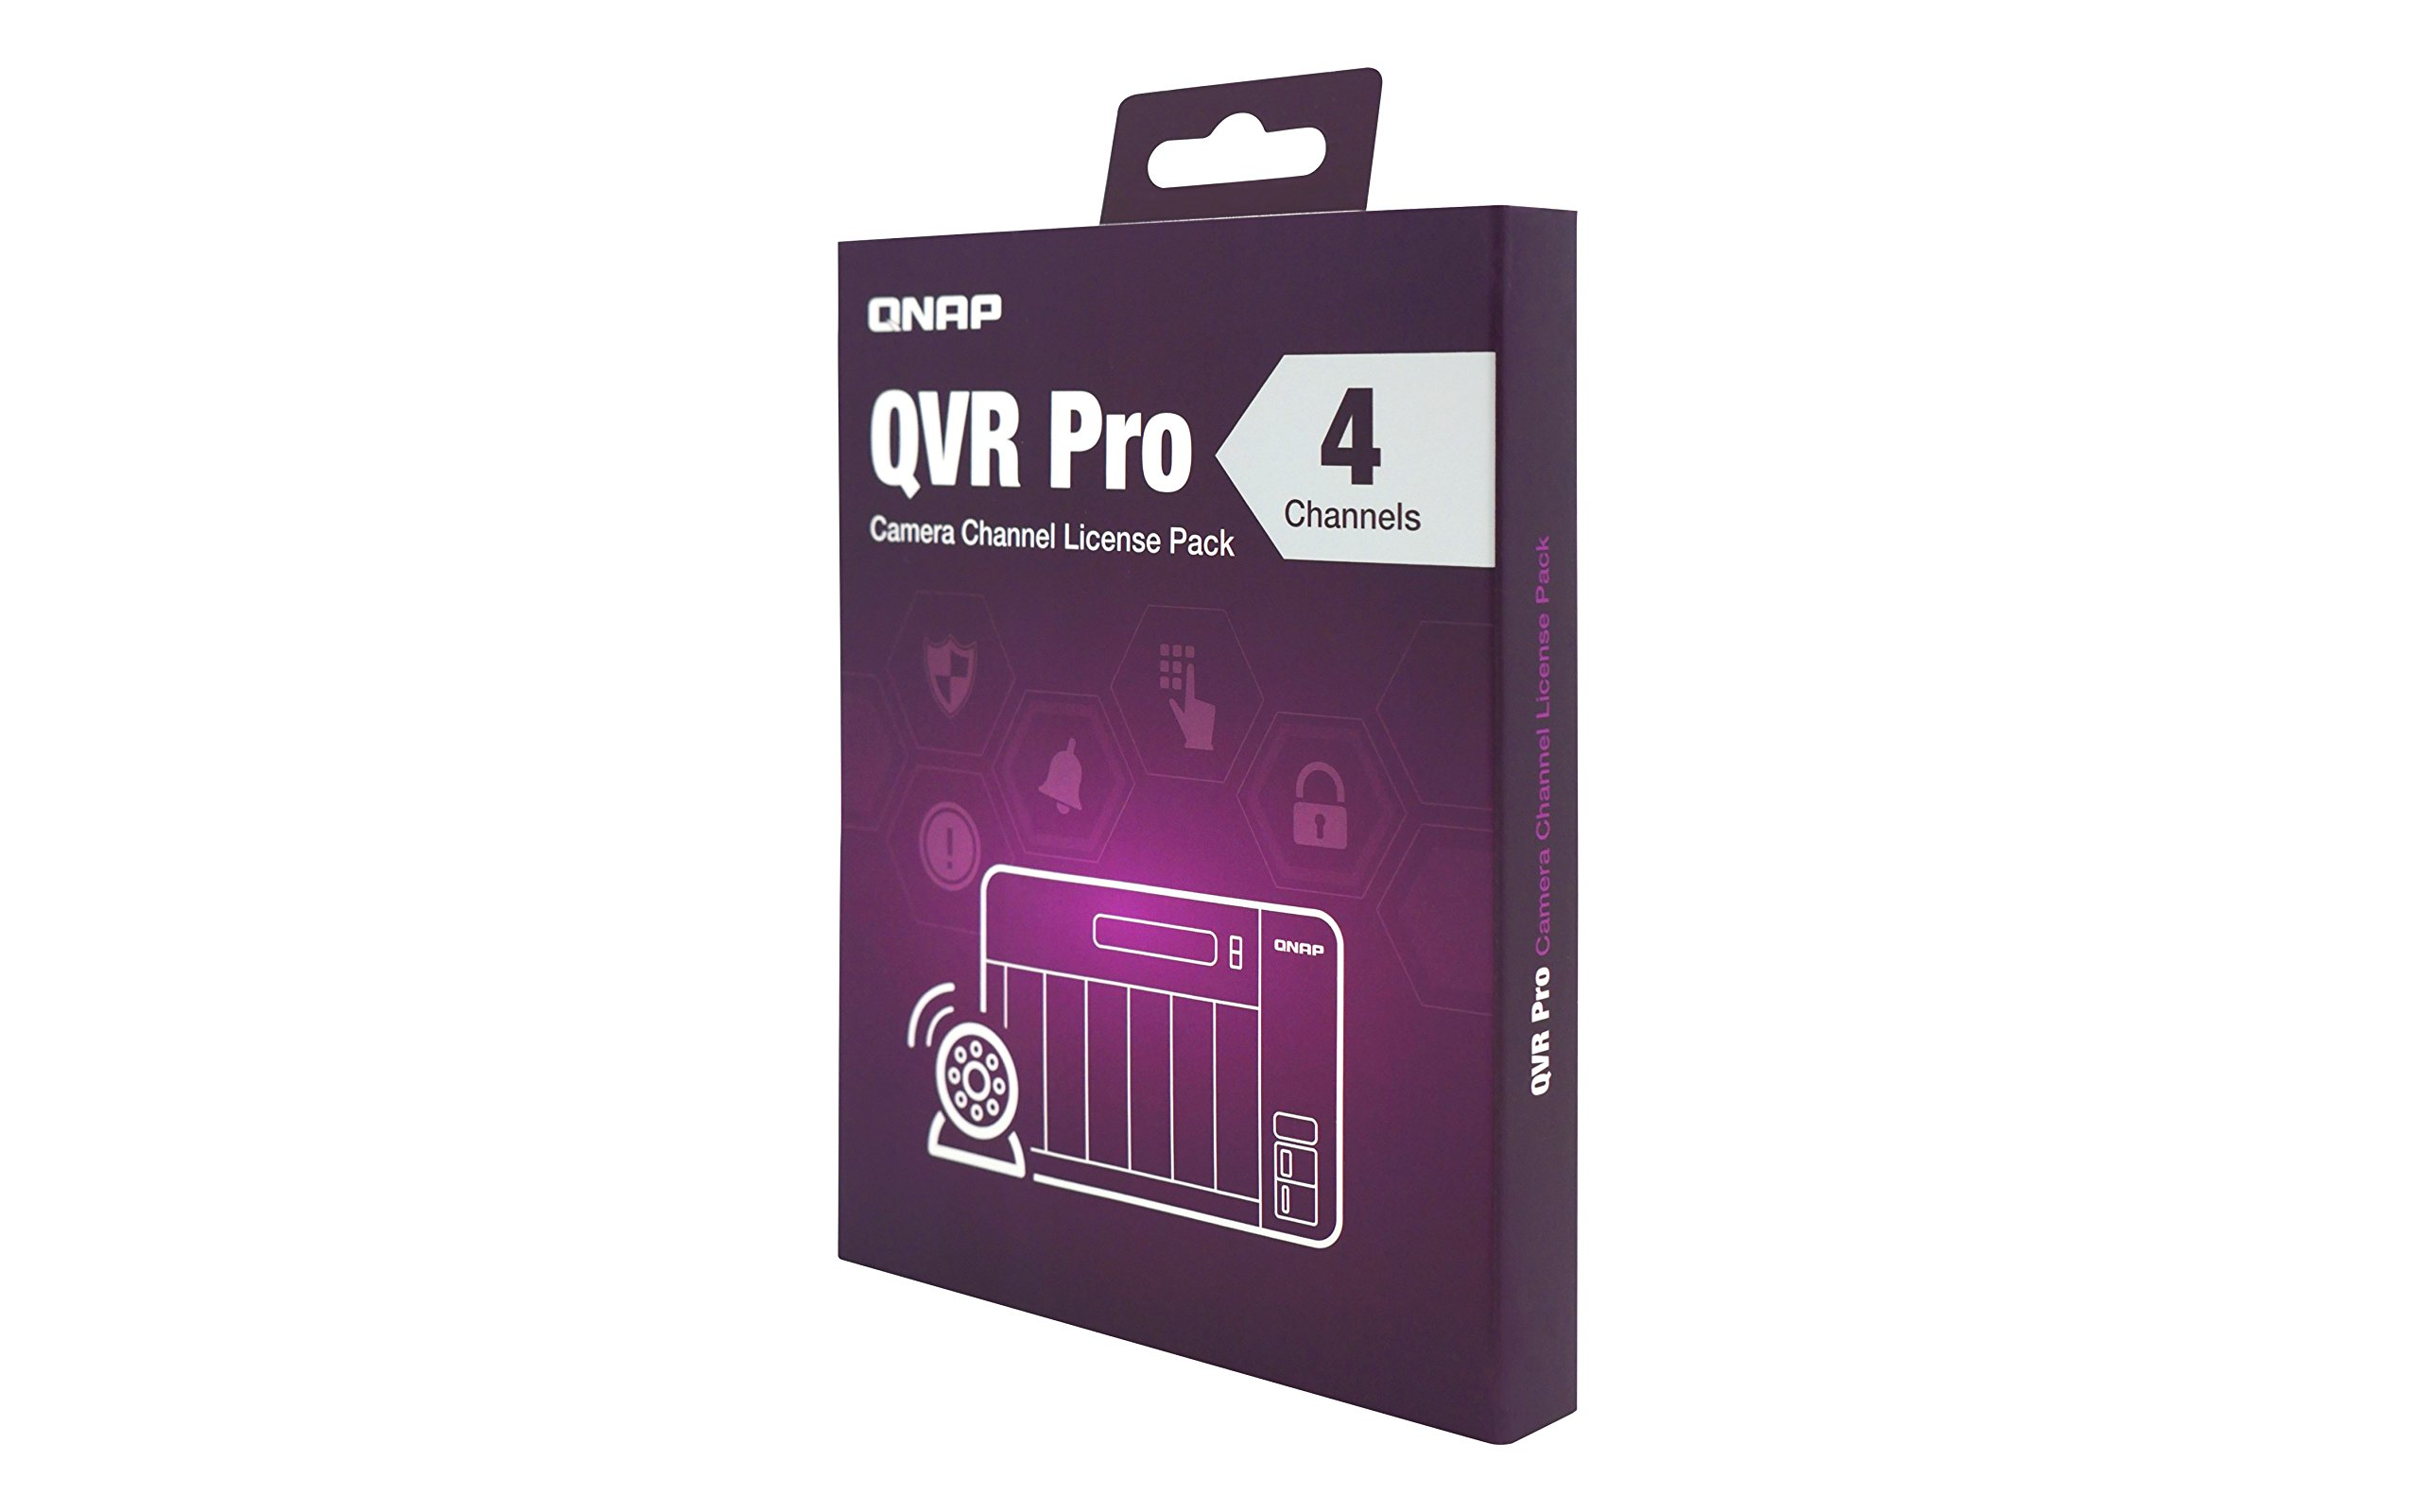 QNAP LIC-SW-QVRPRO-4CH 4 Channel license (QVR Pro Gold is required) 3 Additional 1, 4, or 8 channel(s) for QVR Pro The 1, 4, and 8 channel license can only be activated if the Turbo NAS already has a QVR Pro Gold license. Supported Models: For the best user experience, we recommend using 64-bit x86 NAS models with at least 4GB RAM